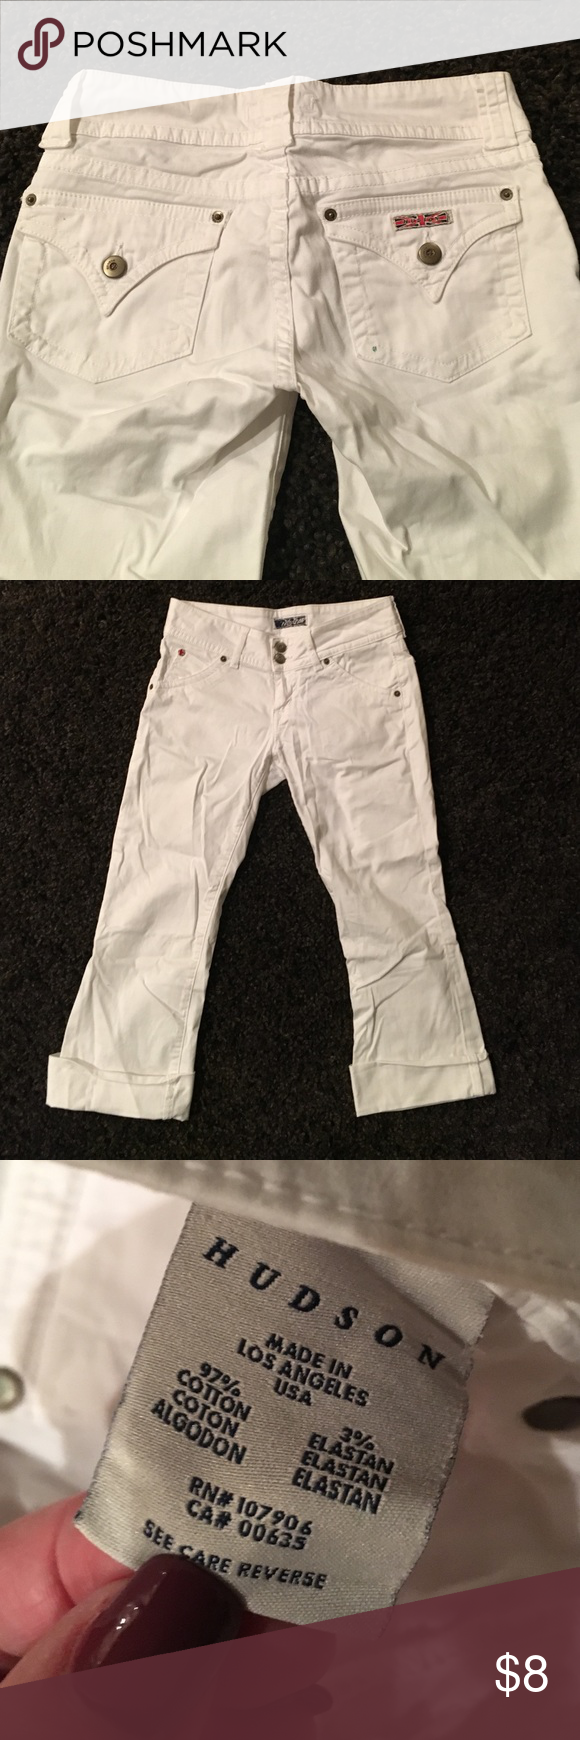 Cropped Hudson White Jeans size 26 These were cut off and cuffed for a Capri look.Super cute,one very small stain on the right back pocket.Can see in the first pic otherwise flawless. Hudson Jeans Jeans Ankle & Cropped